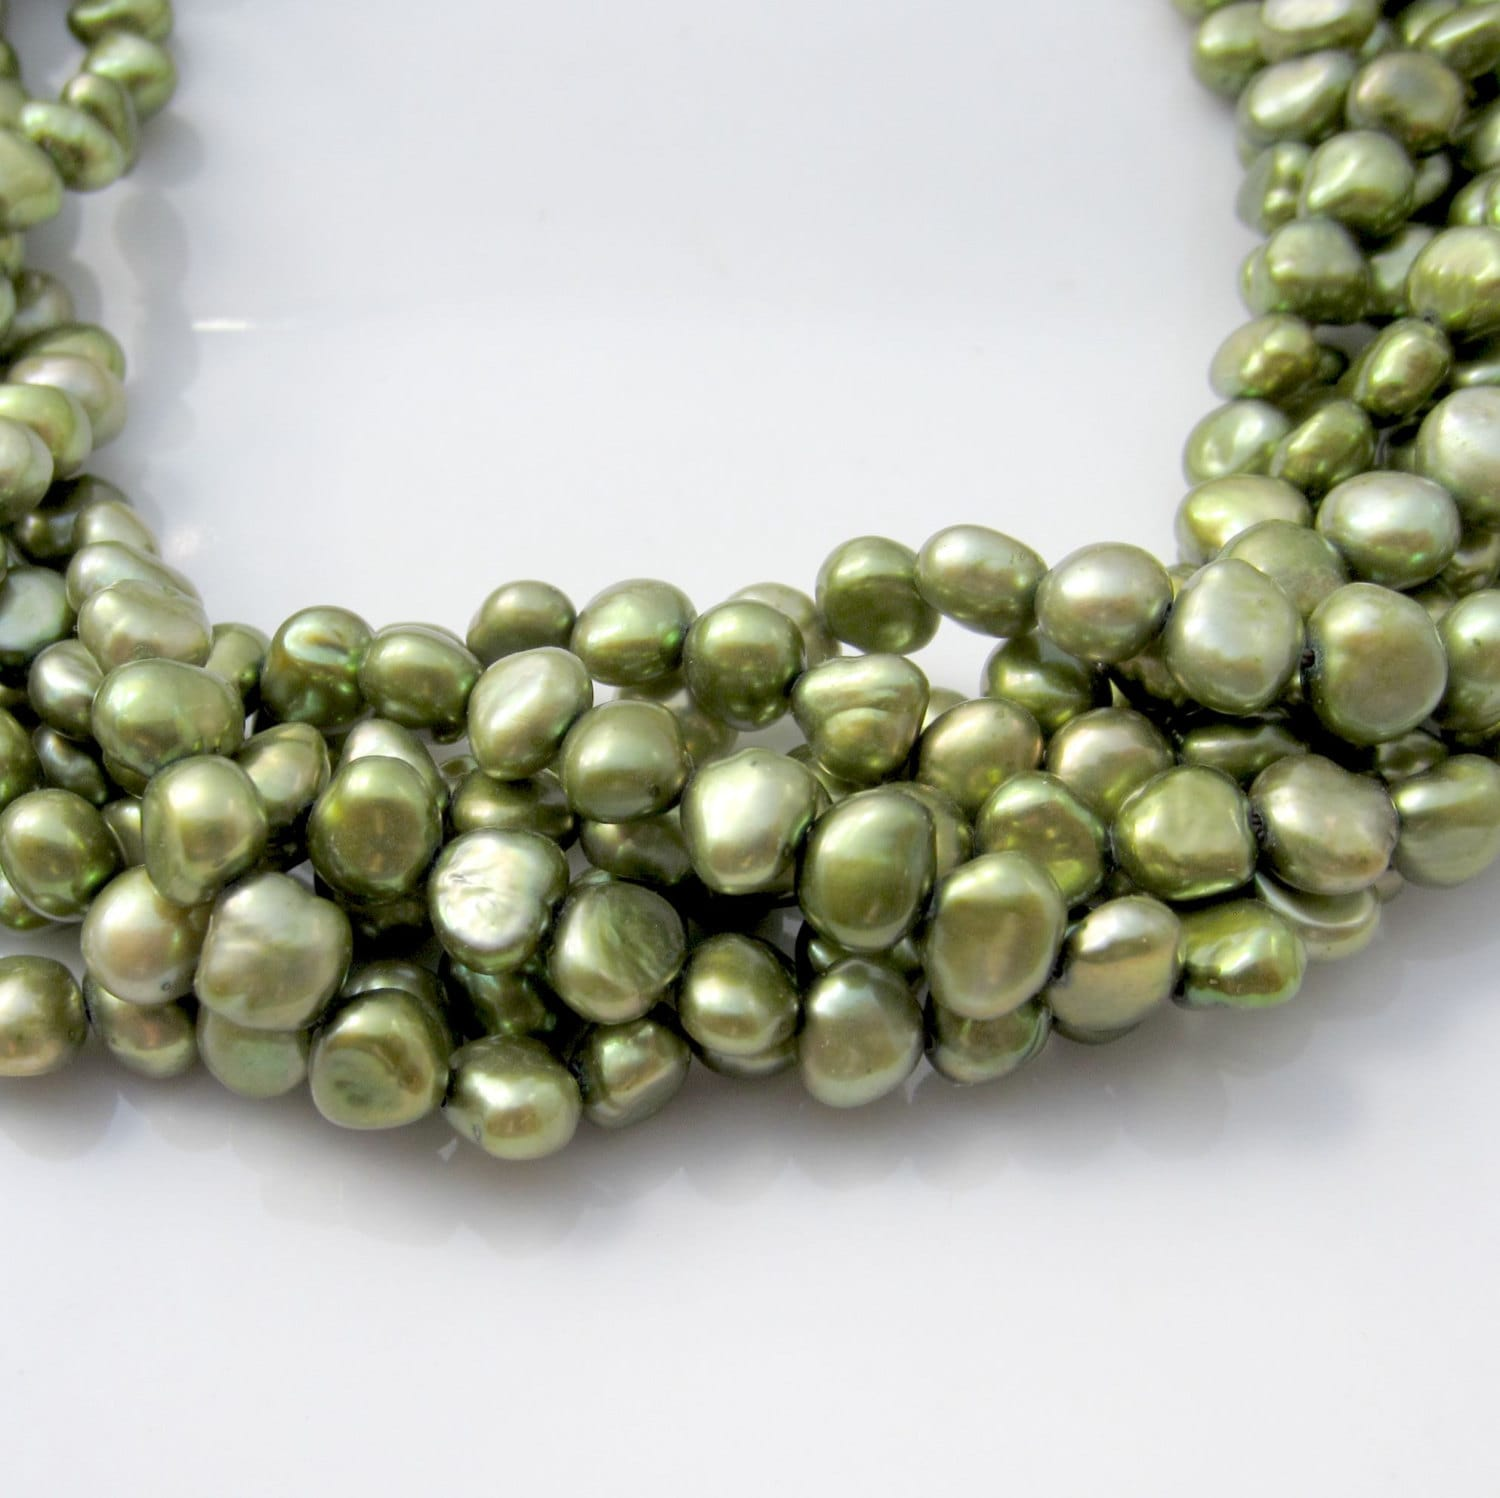 green s st assortment pin day patrick bead pearls pearl